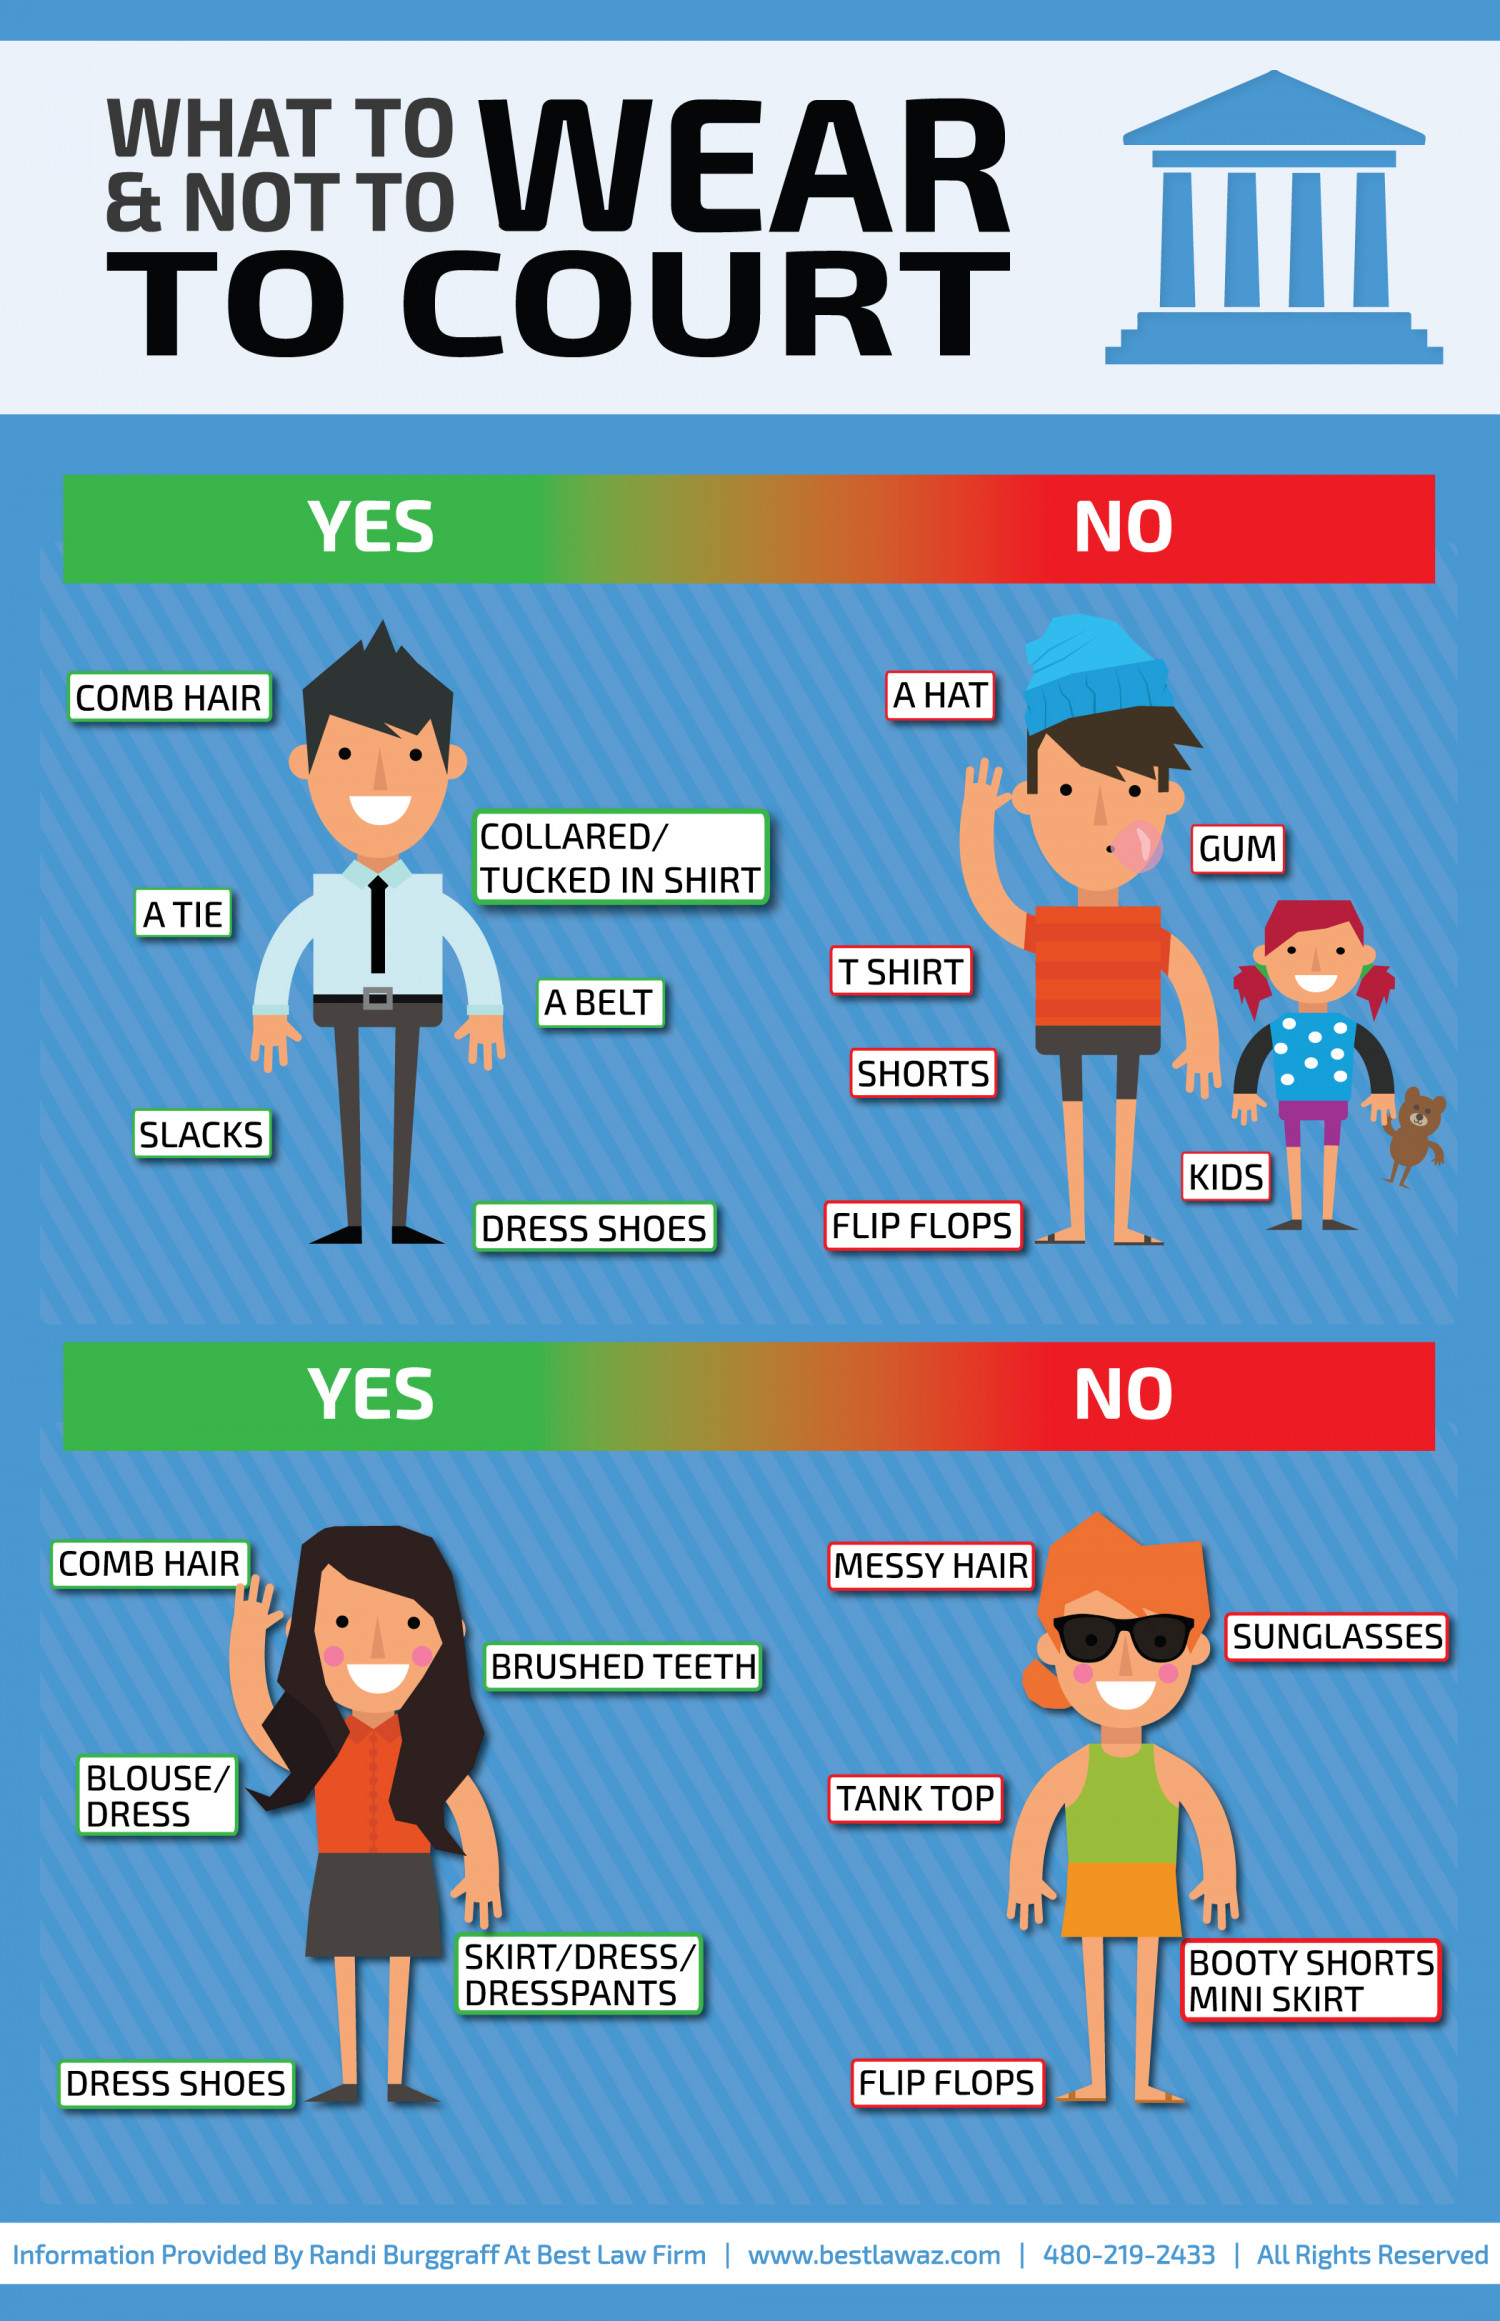 What To & Not To Wear To Court Infographic